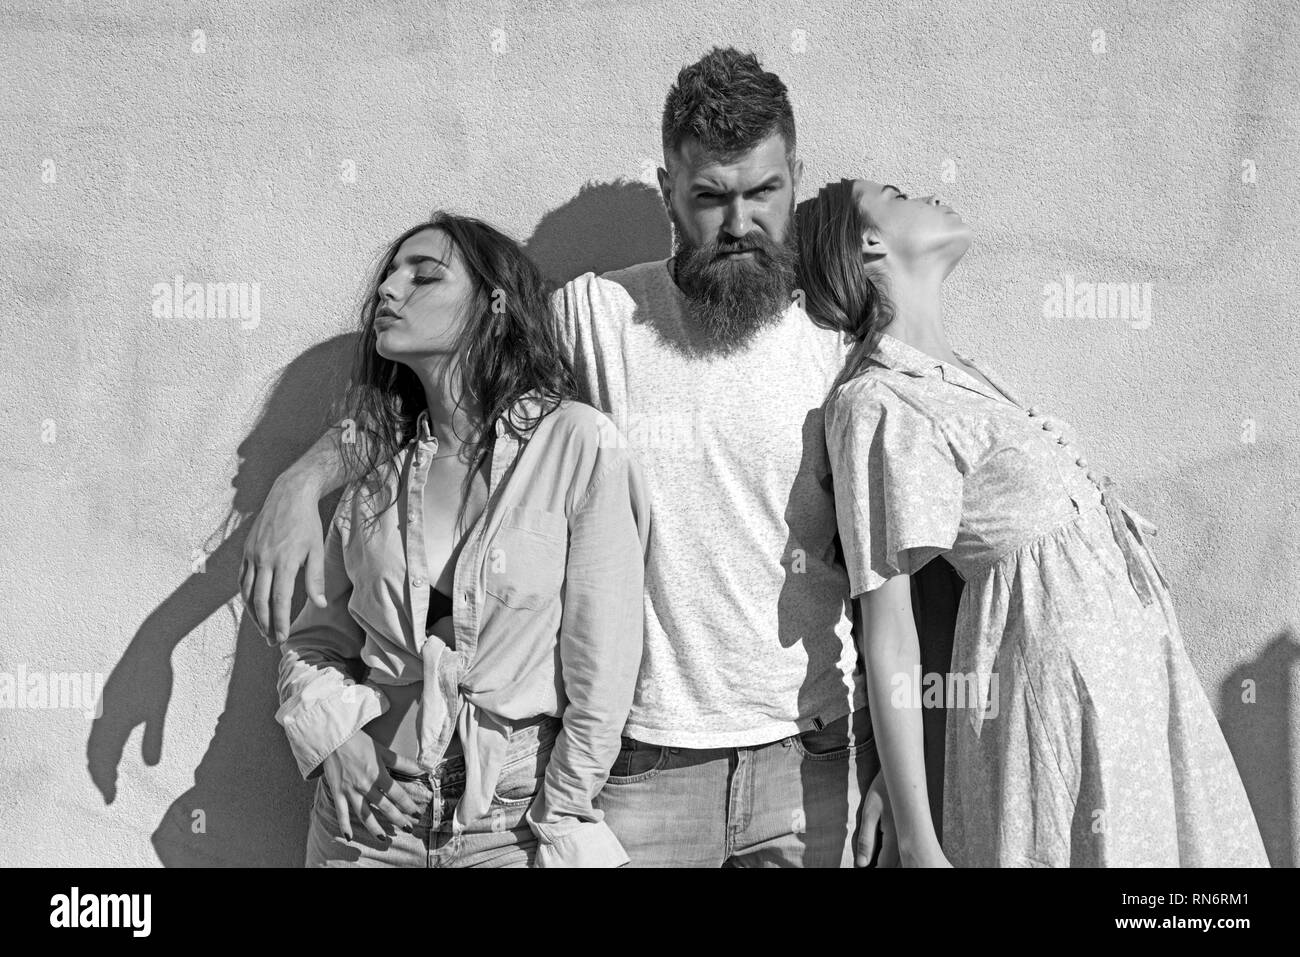 Man with beard hugs two ladies on hot sunny day. Girls turned to opposite sides while man hugs them. Love triangle concept. Threesome suffers of heat - Stock Image